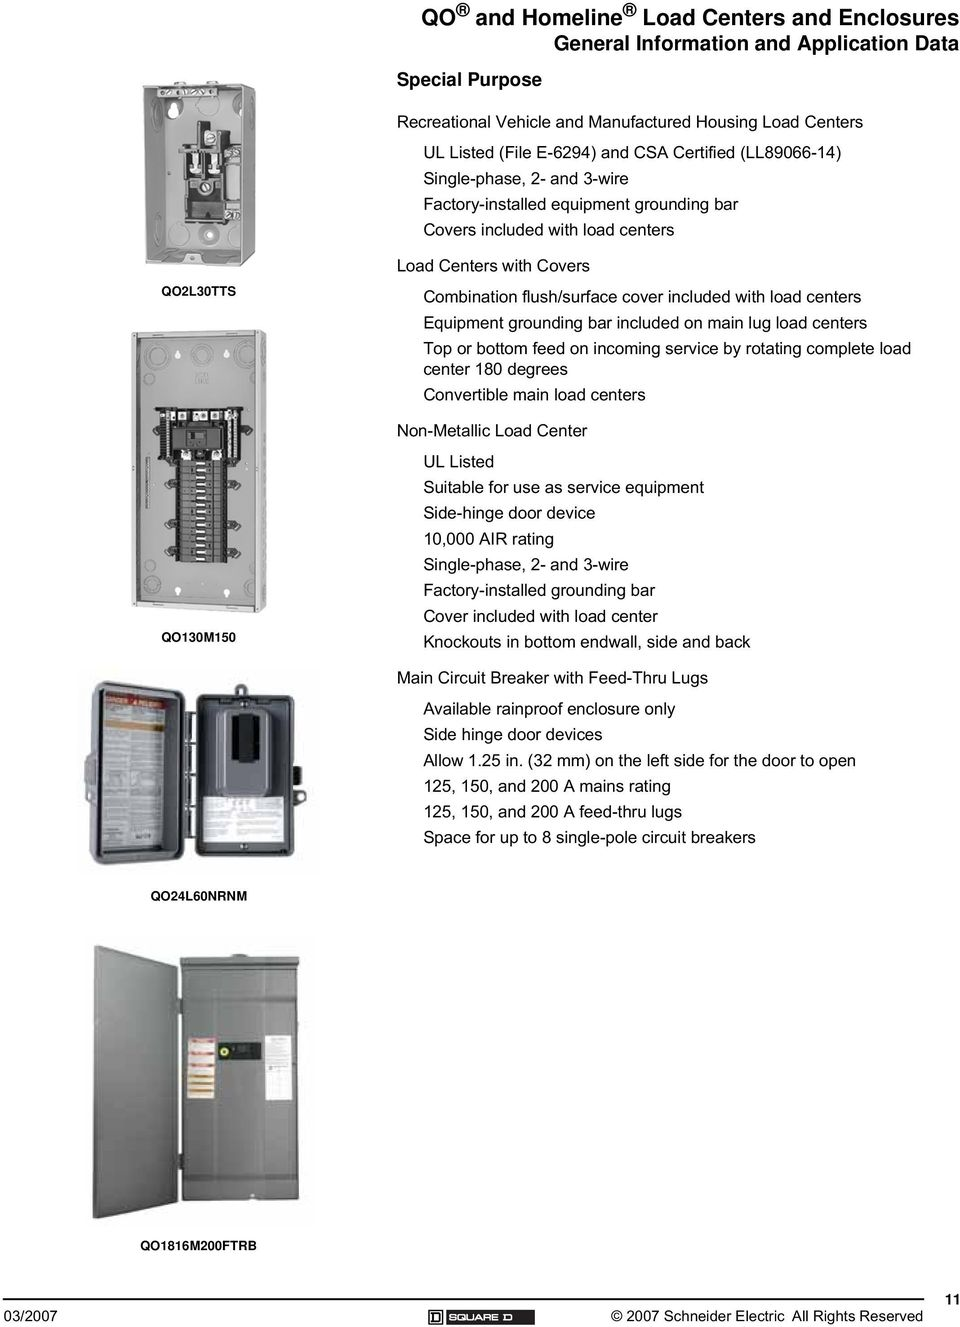 Qo And Homeline Load Centers Enclosures Pdf Space 8circuit Outdoor Singlephase Main Lug Circuit Breaker Panel Equipment Grounding Bar Included On Top Or Bottom Feed